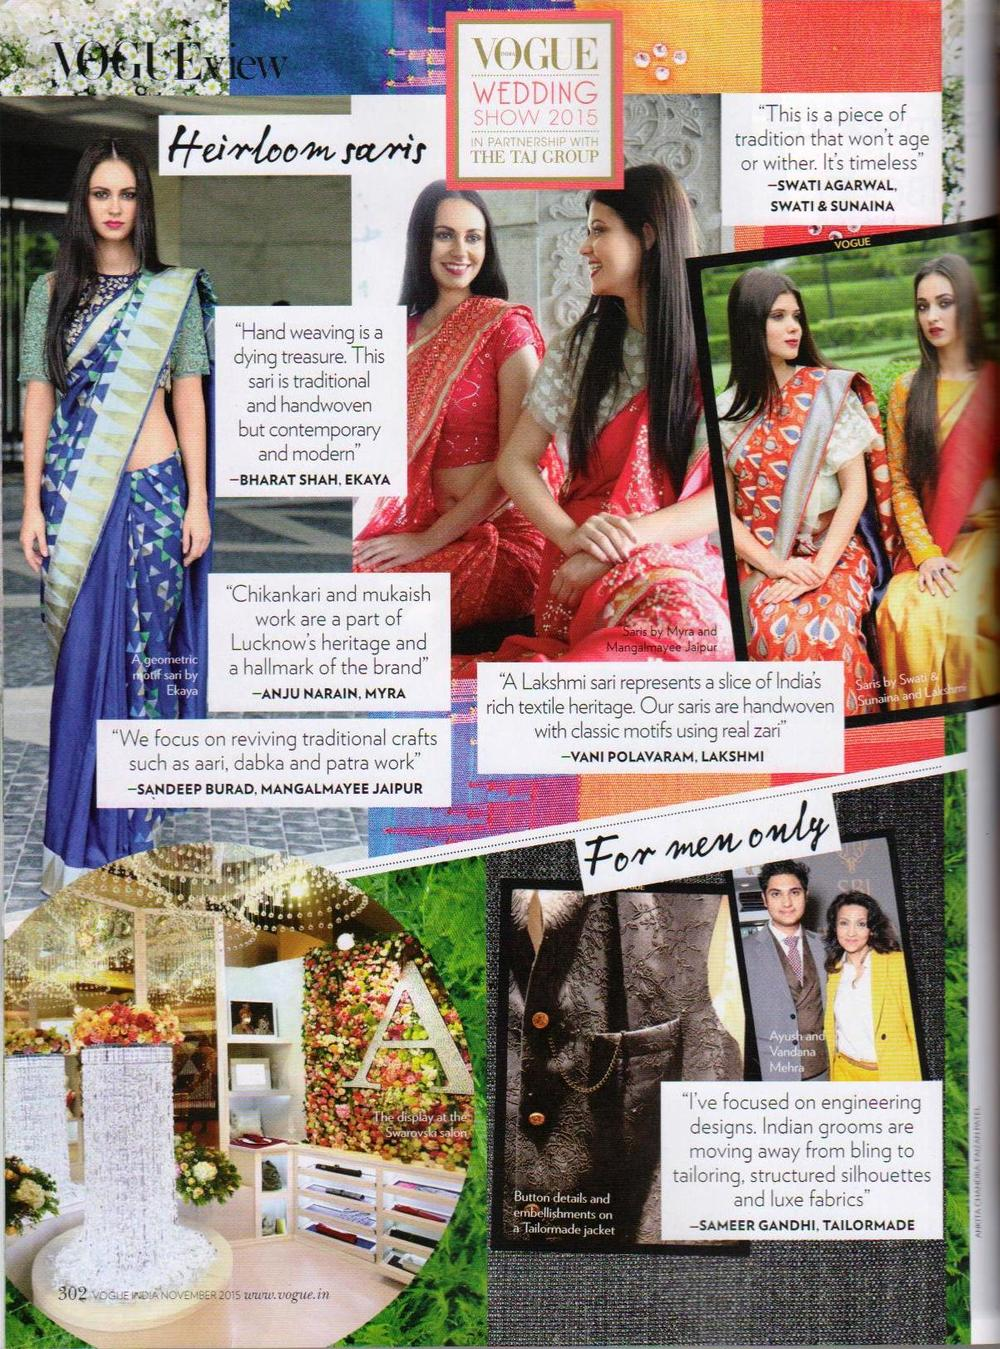 Featured in Vogue Wedding Show 2015